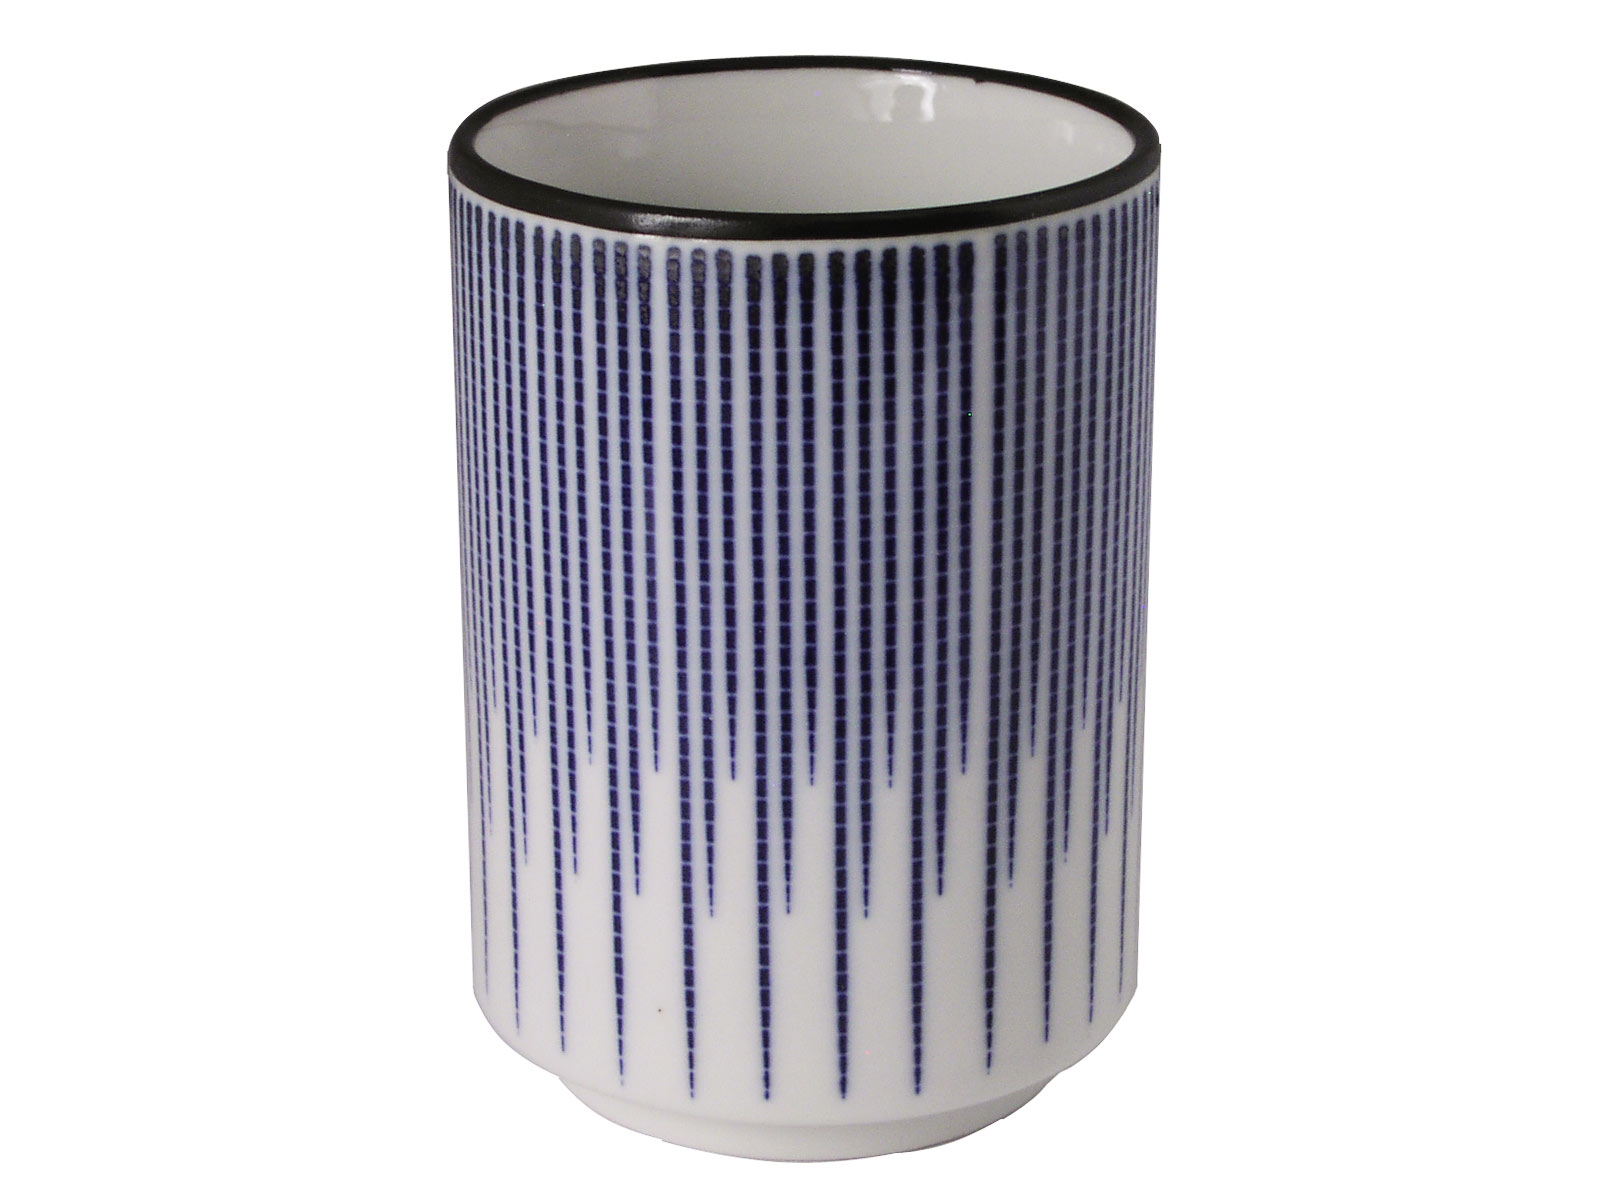 Blue And White Mosaic Rain Fall Japanese Tea Cup